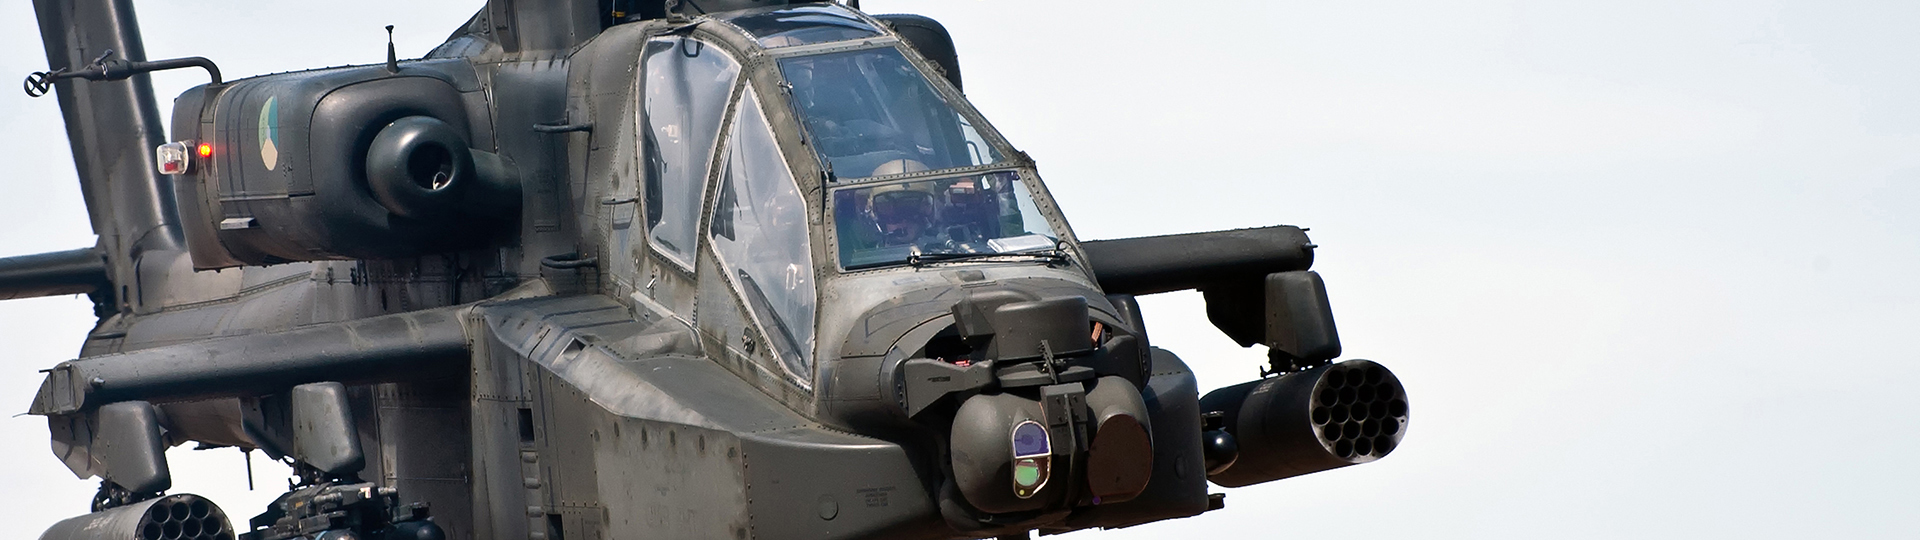 Boeing AH-64 Attack Helicopter